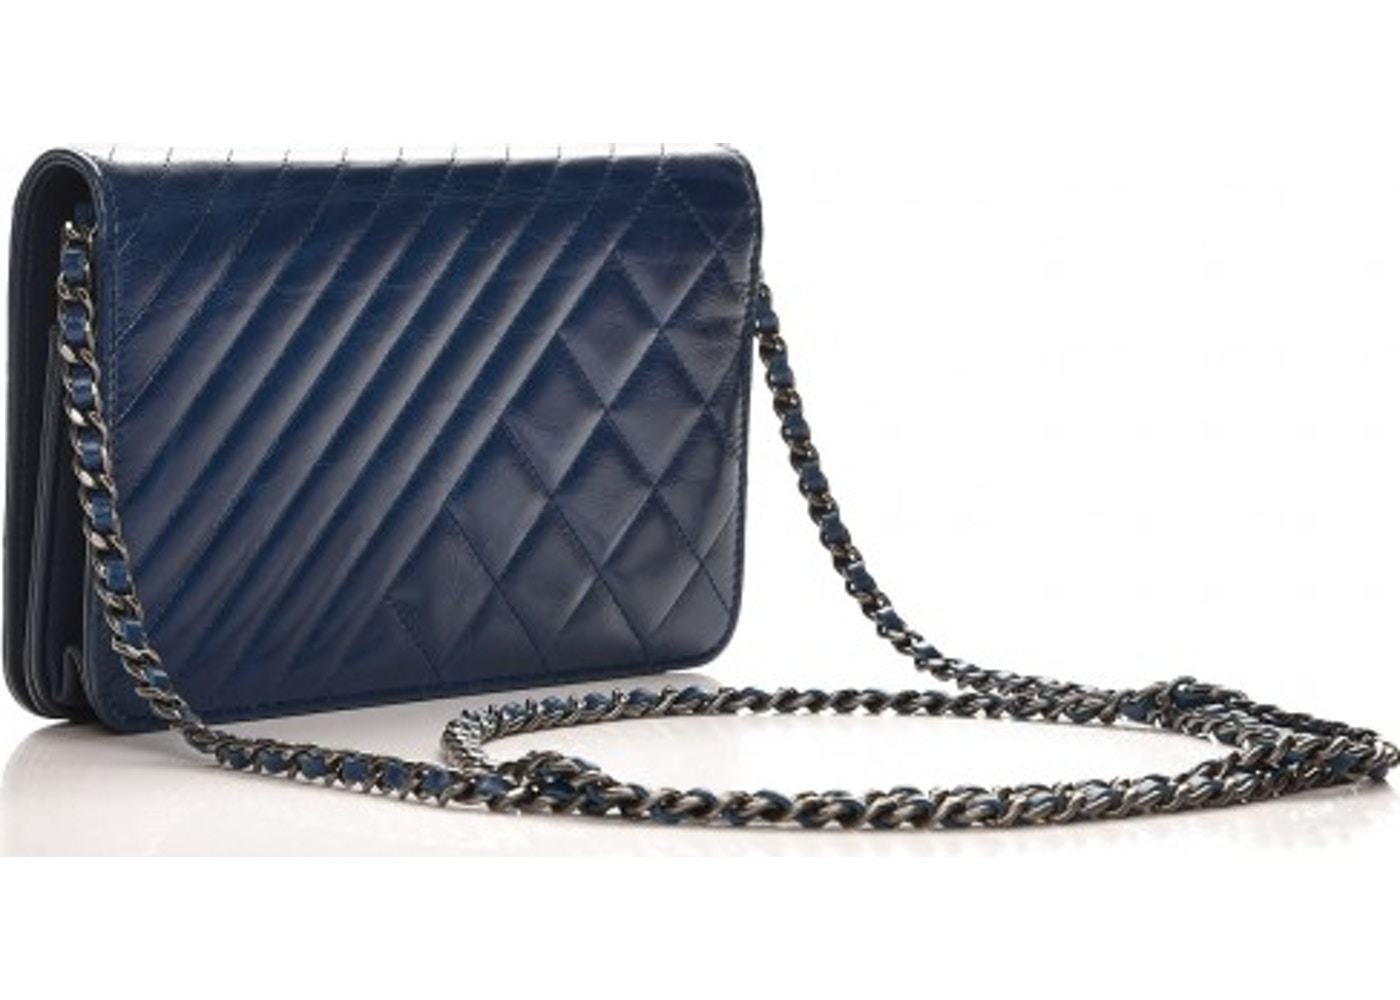 b8788d33f13d62 Chanel Coco Boy Wallet On Chain Quilted Diamond Glazed Blue